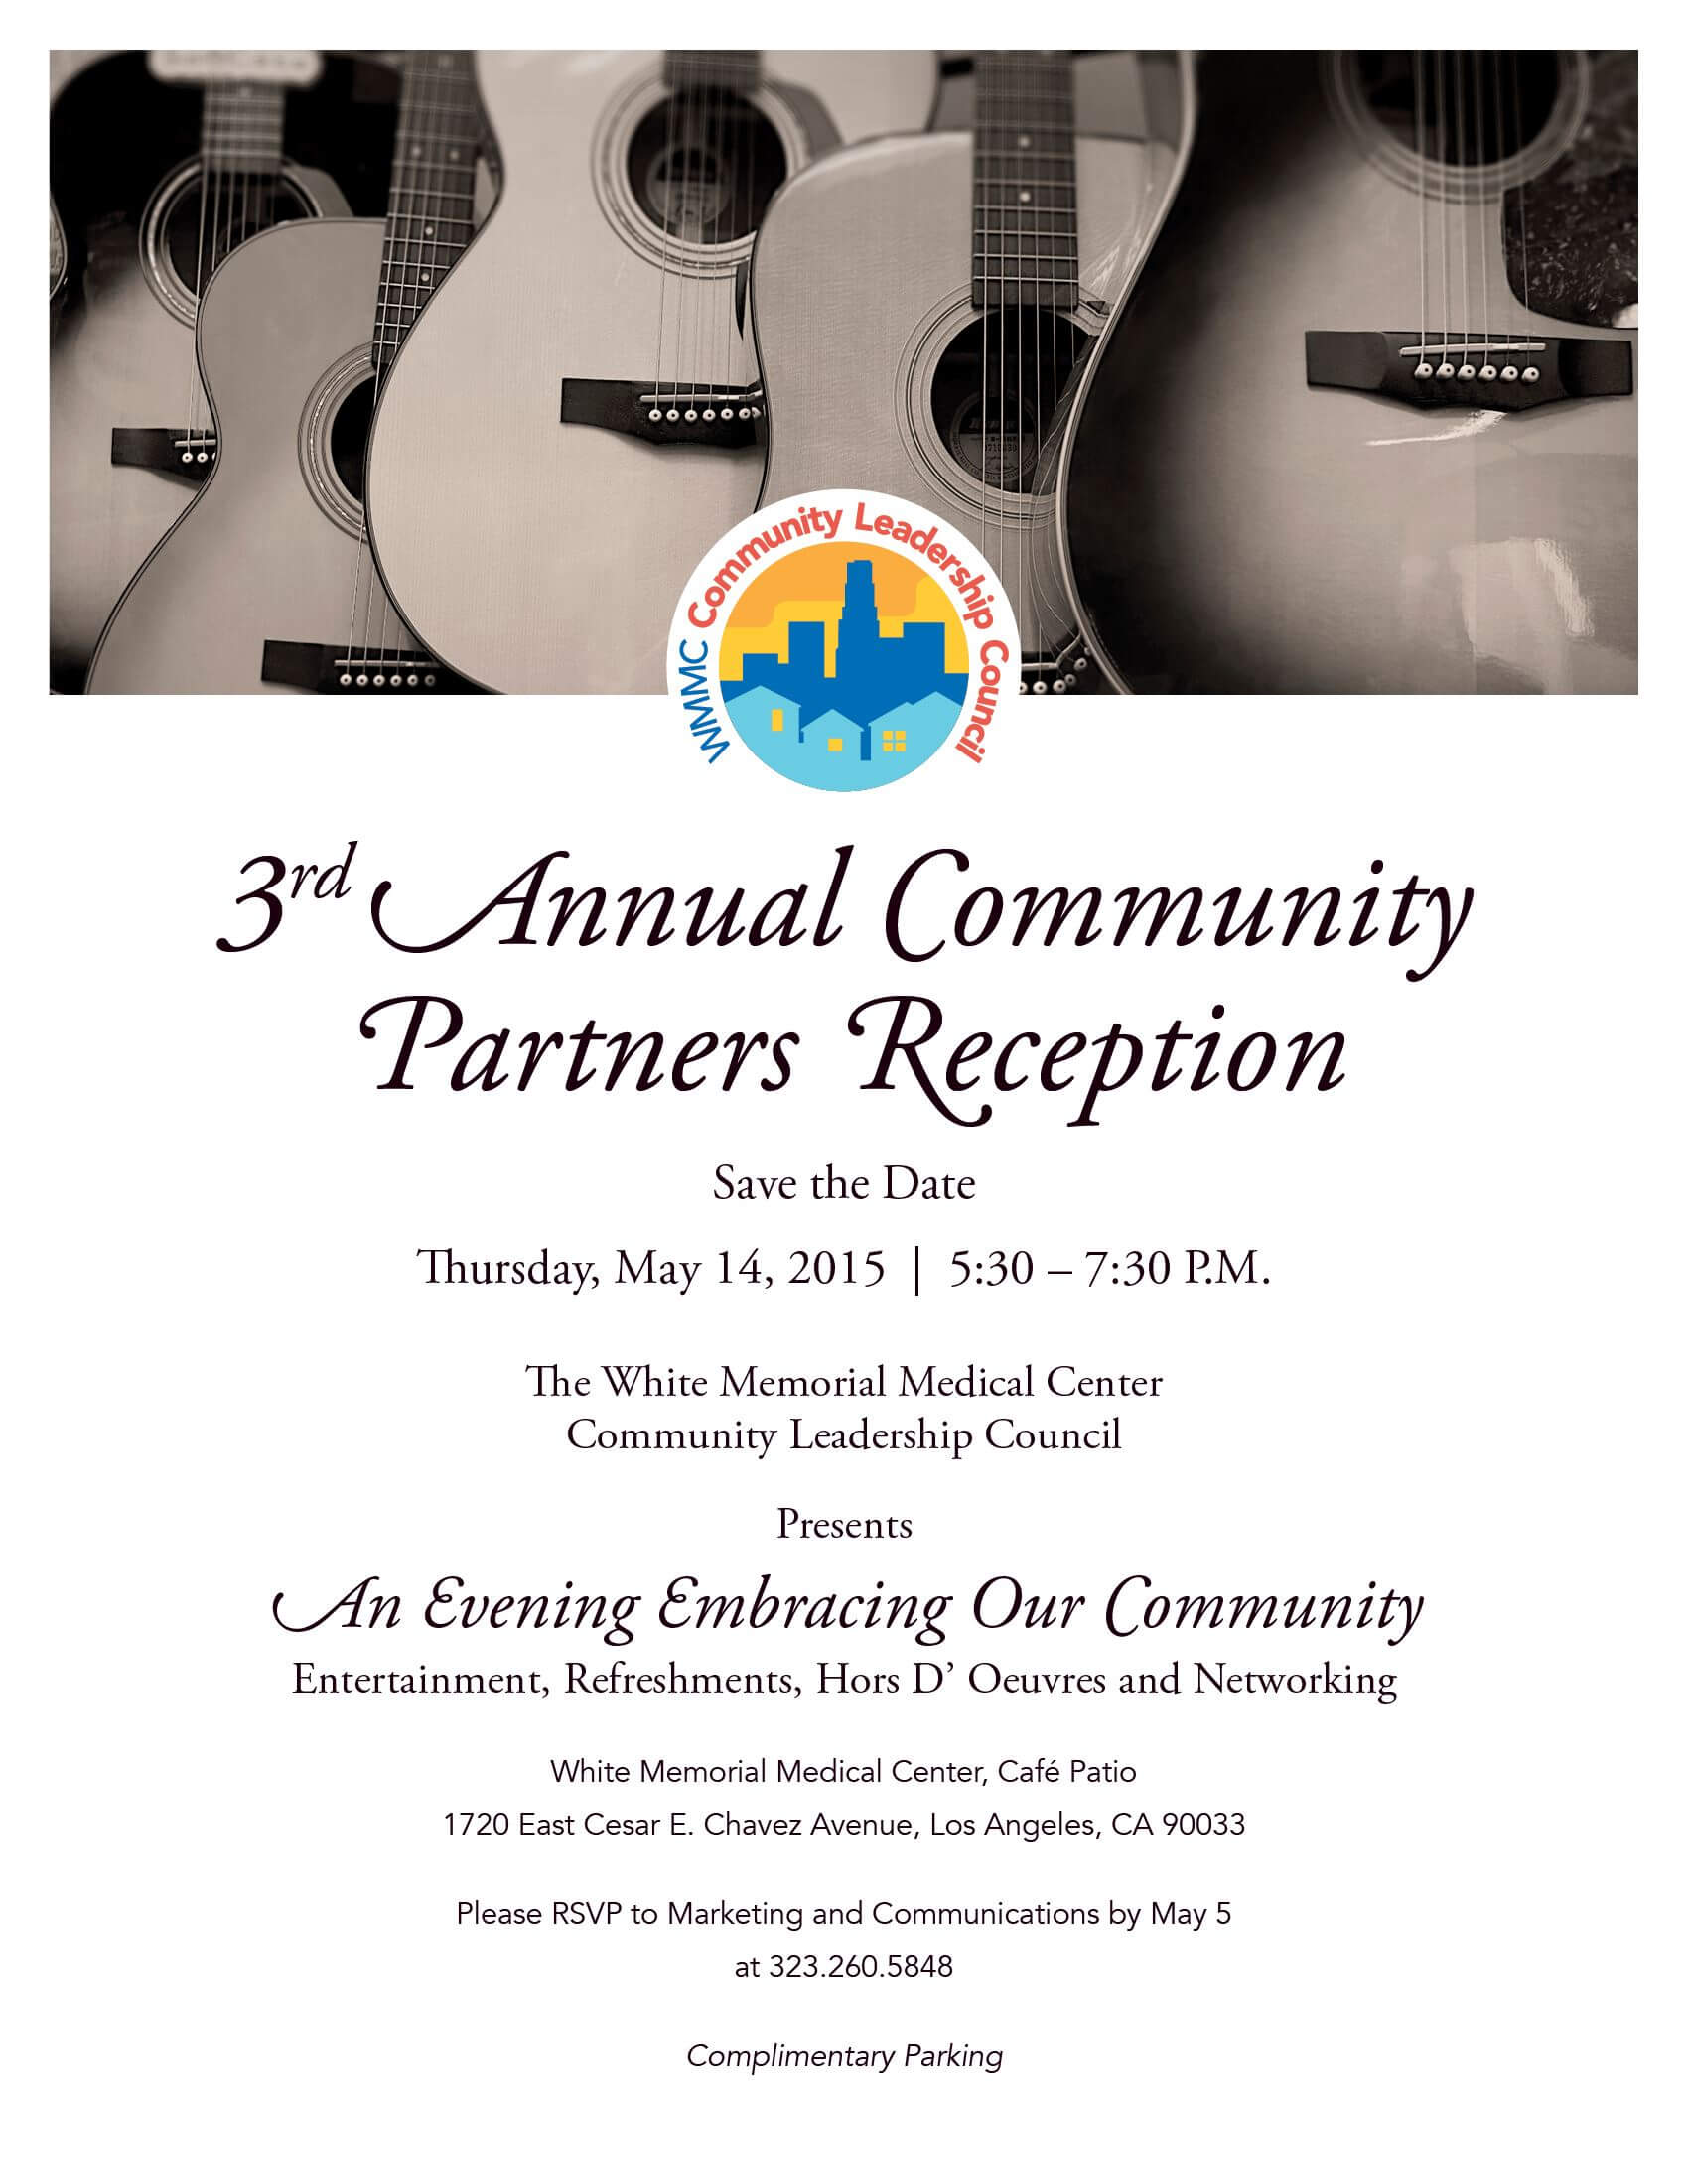 3rd annual community partners reception flyer